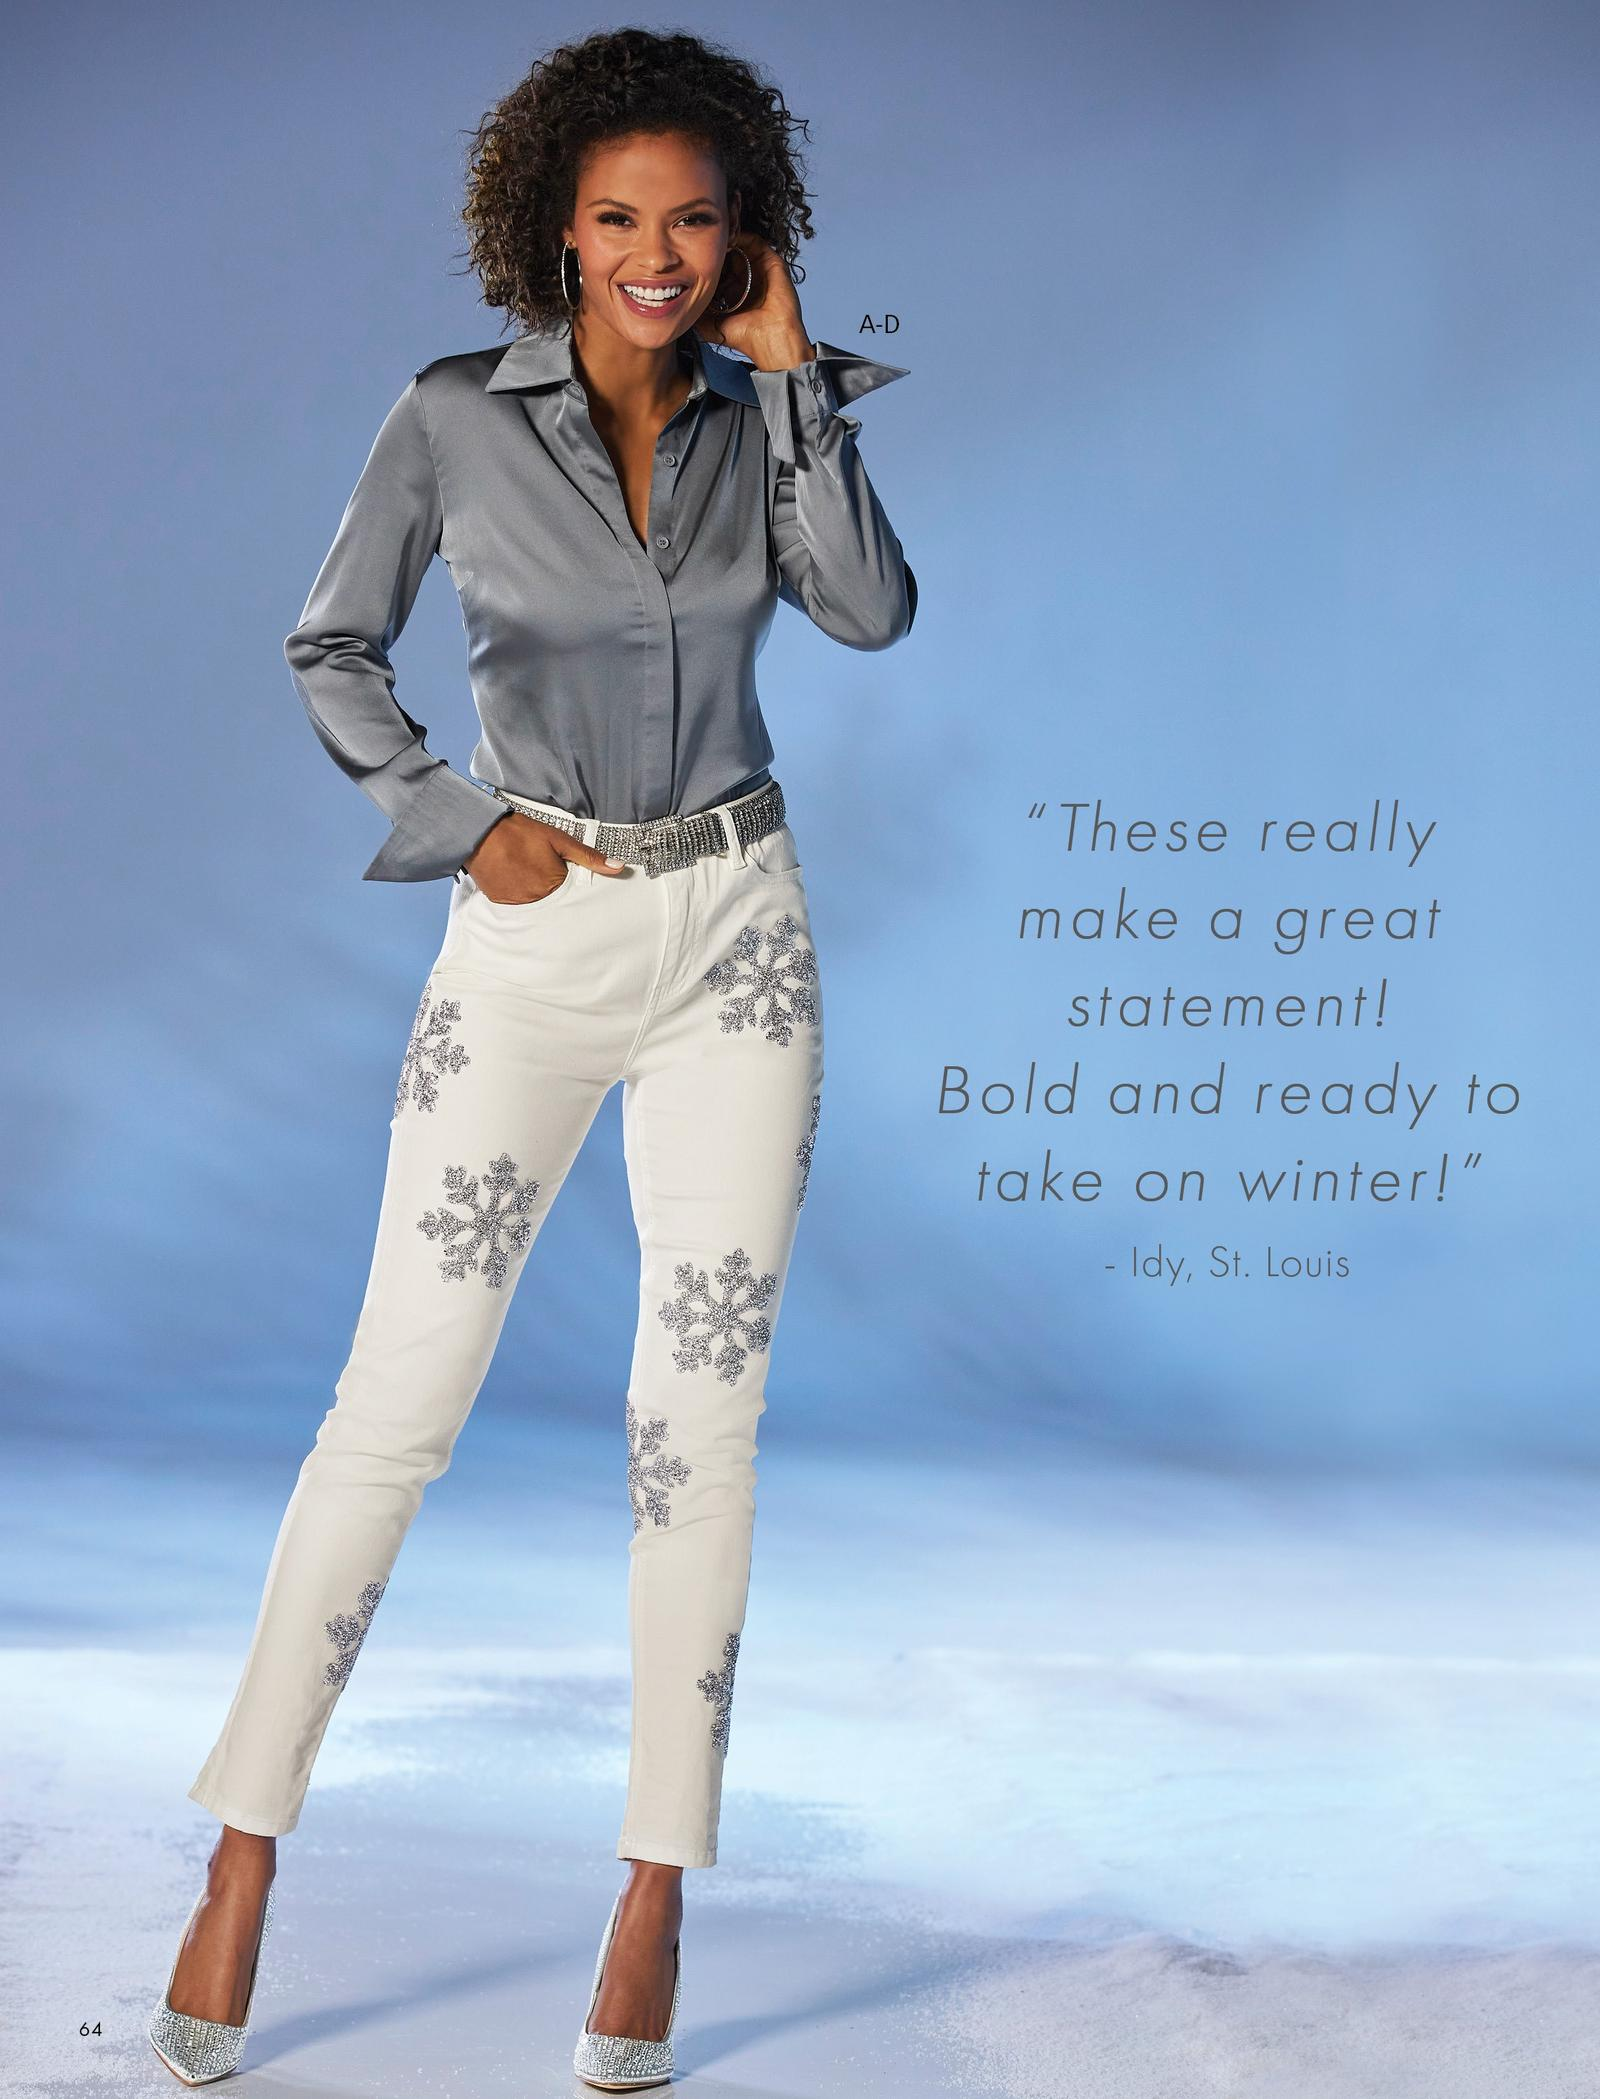 Model wearing a gray long-sleeve button-down blouse, silver chain belt, white jeans with snowflake embellishments, and silver embellished pumps.